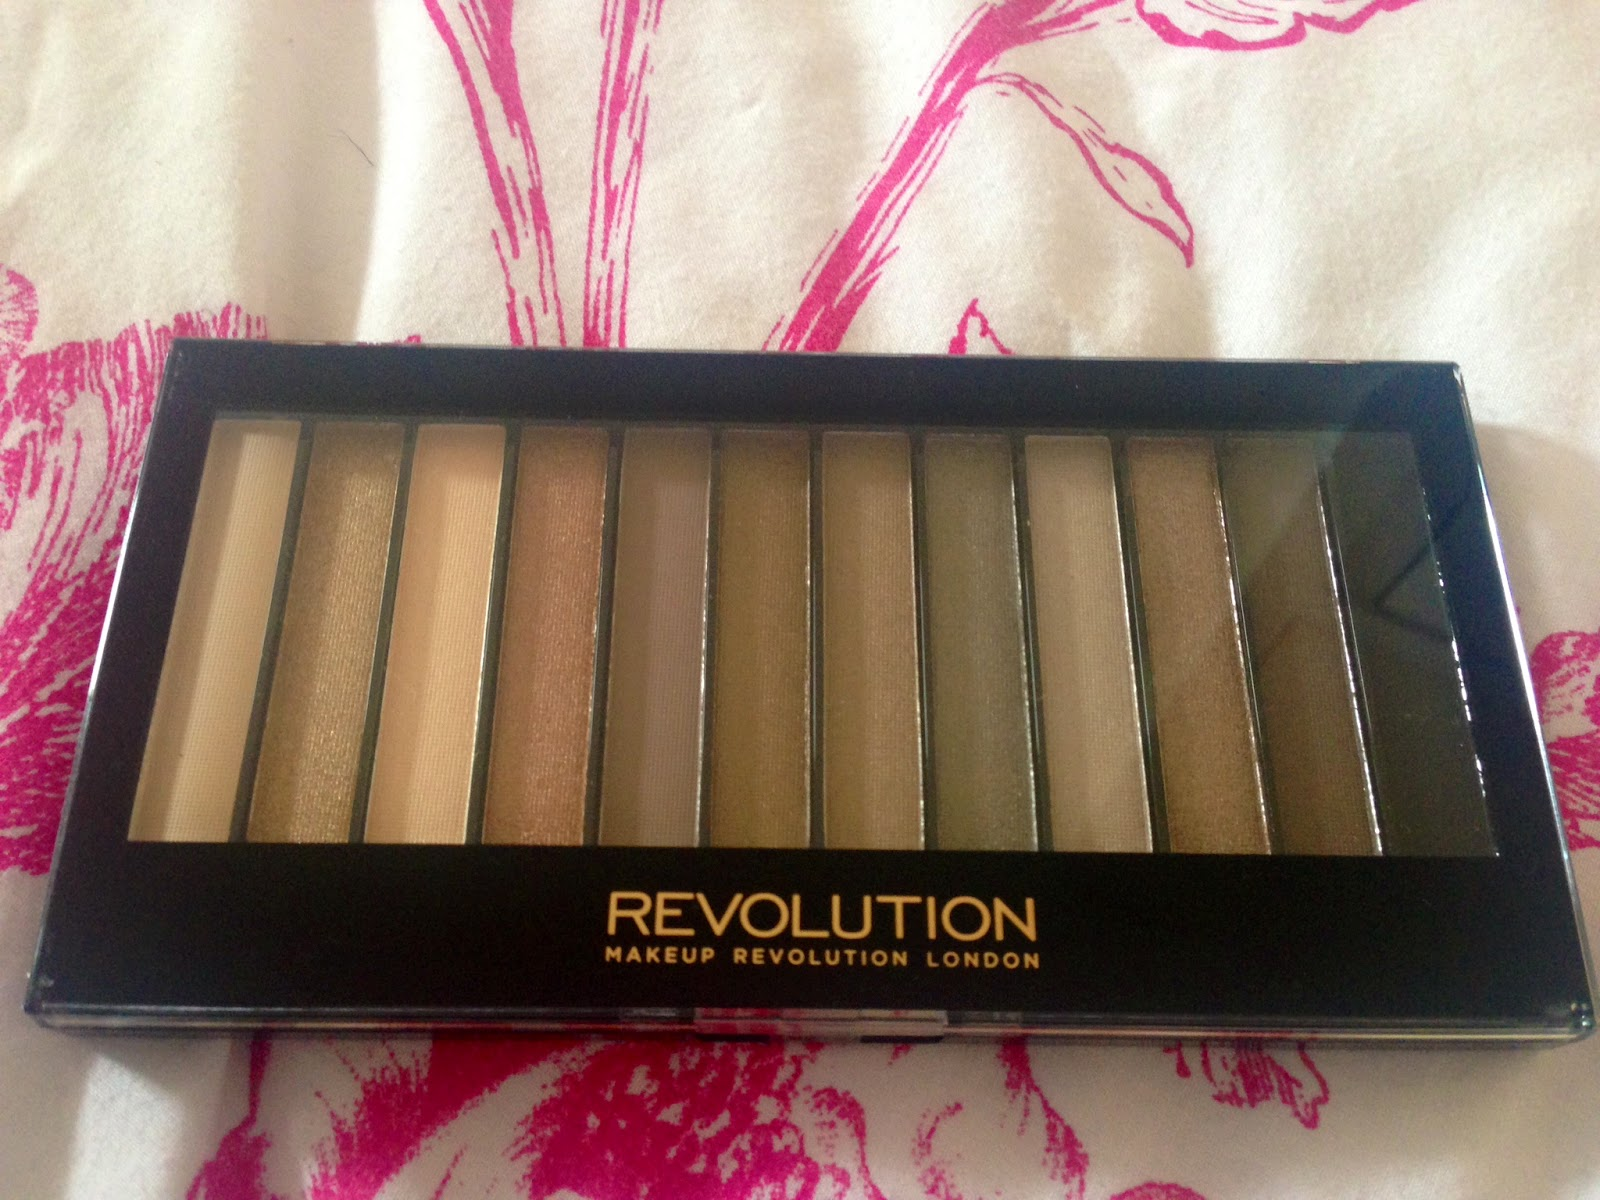 After featuring this in my post showing colours you can wear all year round, I realised I never gave the Makeup Revolution Iconic 2 (£4) a full review and ...